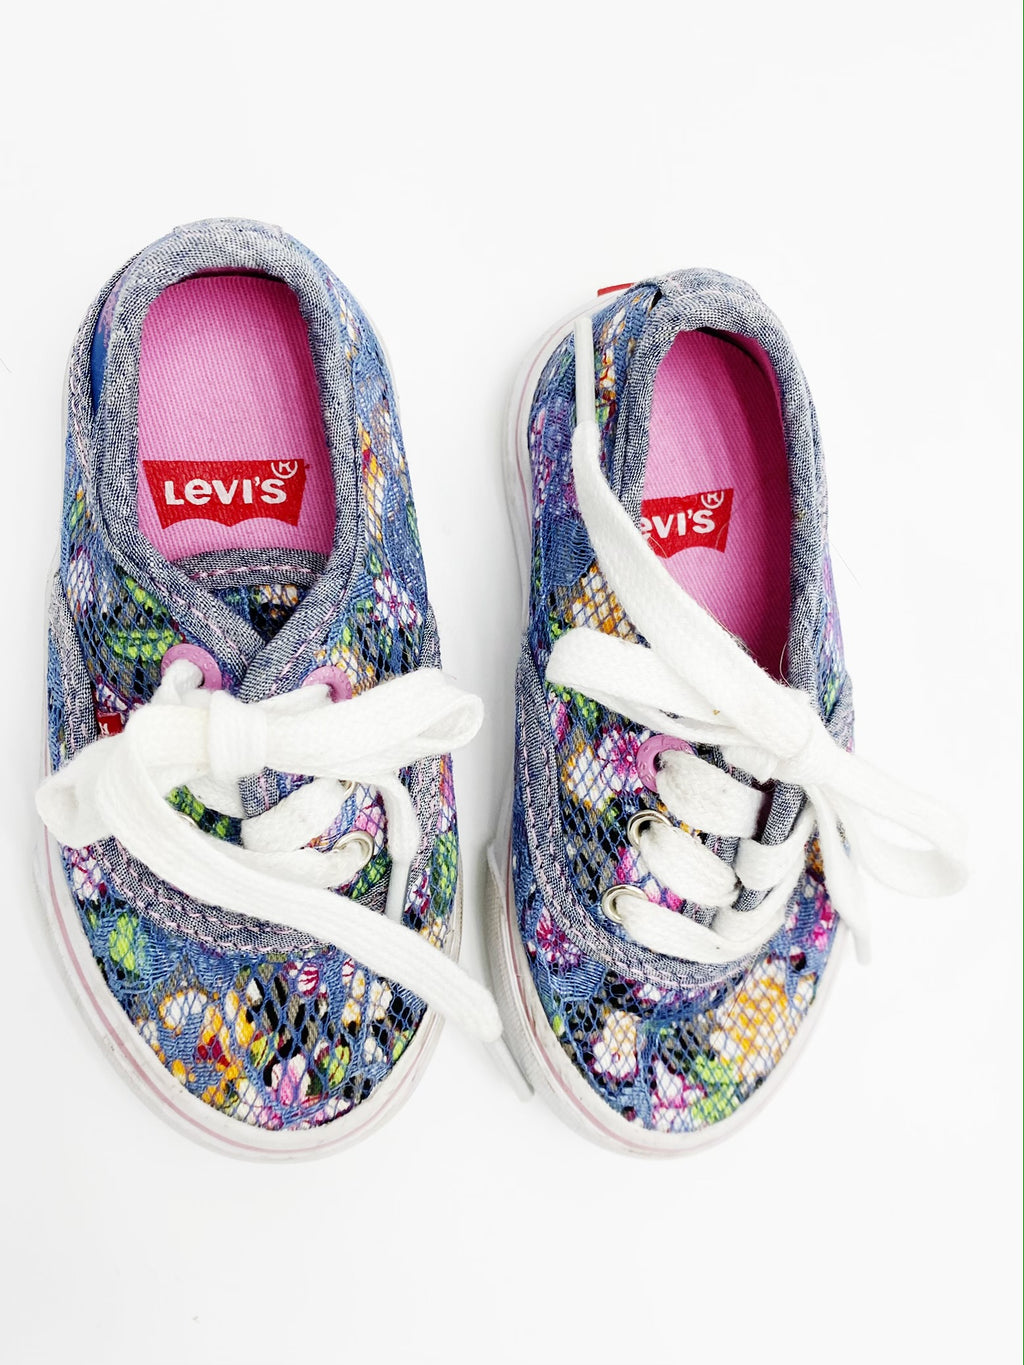 Levi's runners size 7